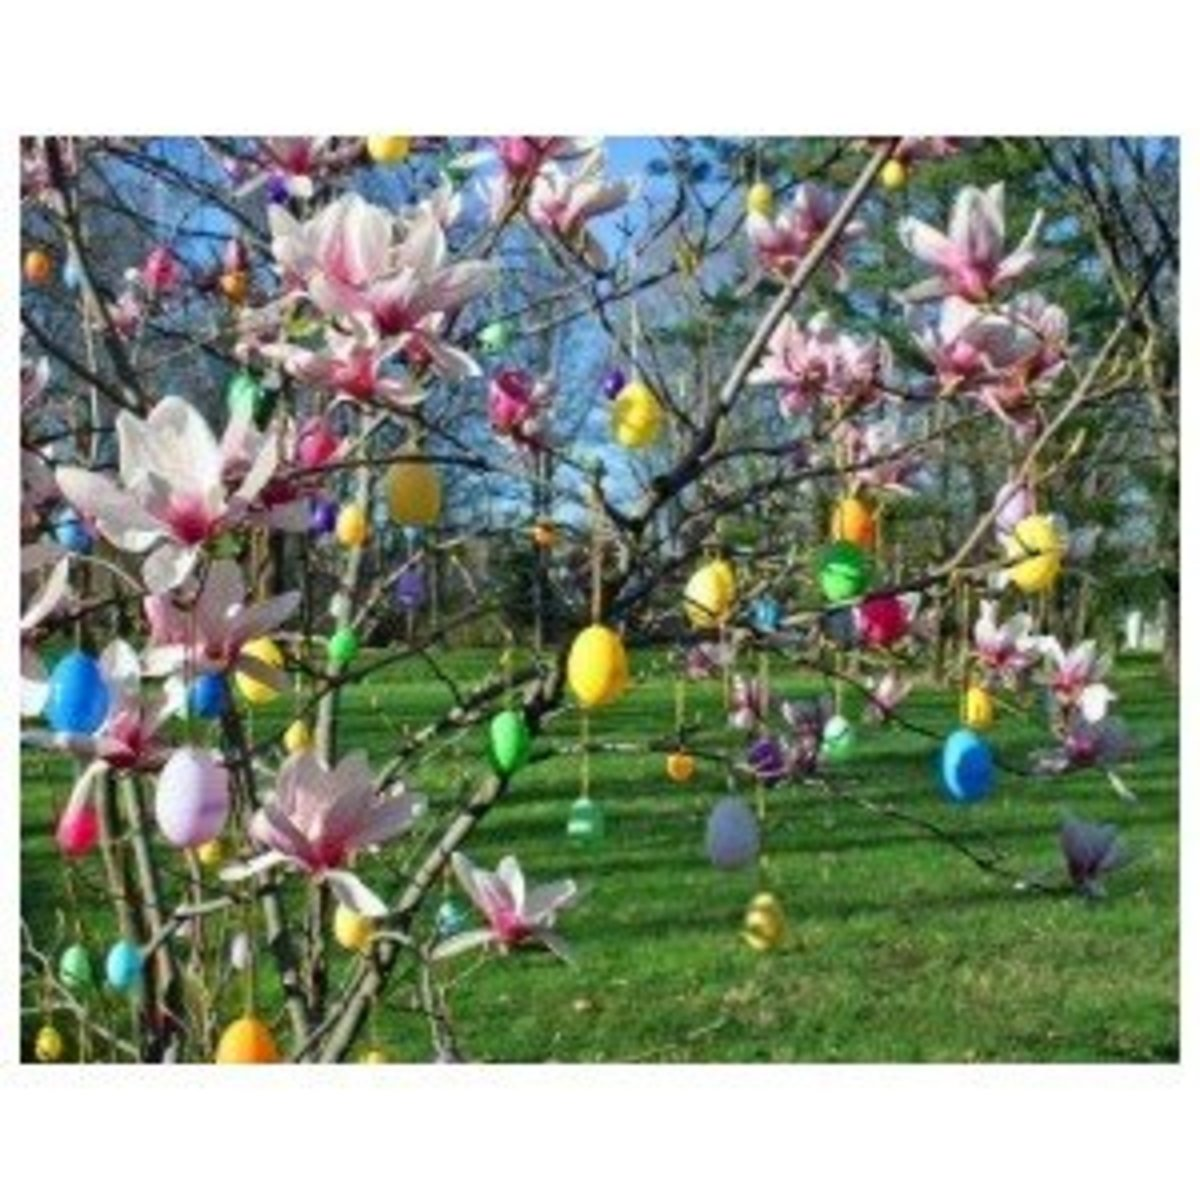 Colorful Exterior Easter Decorations on a Magnolia Tree just beginning to bud